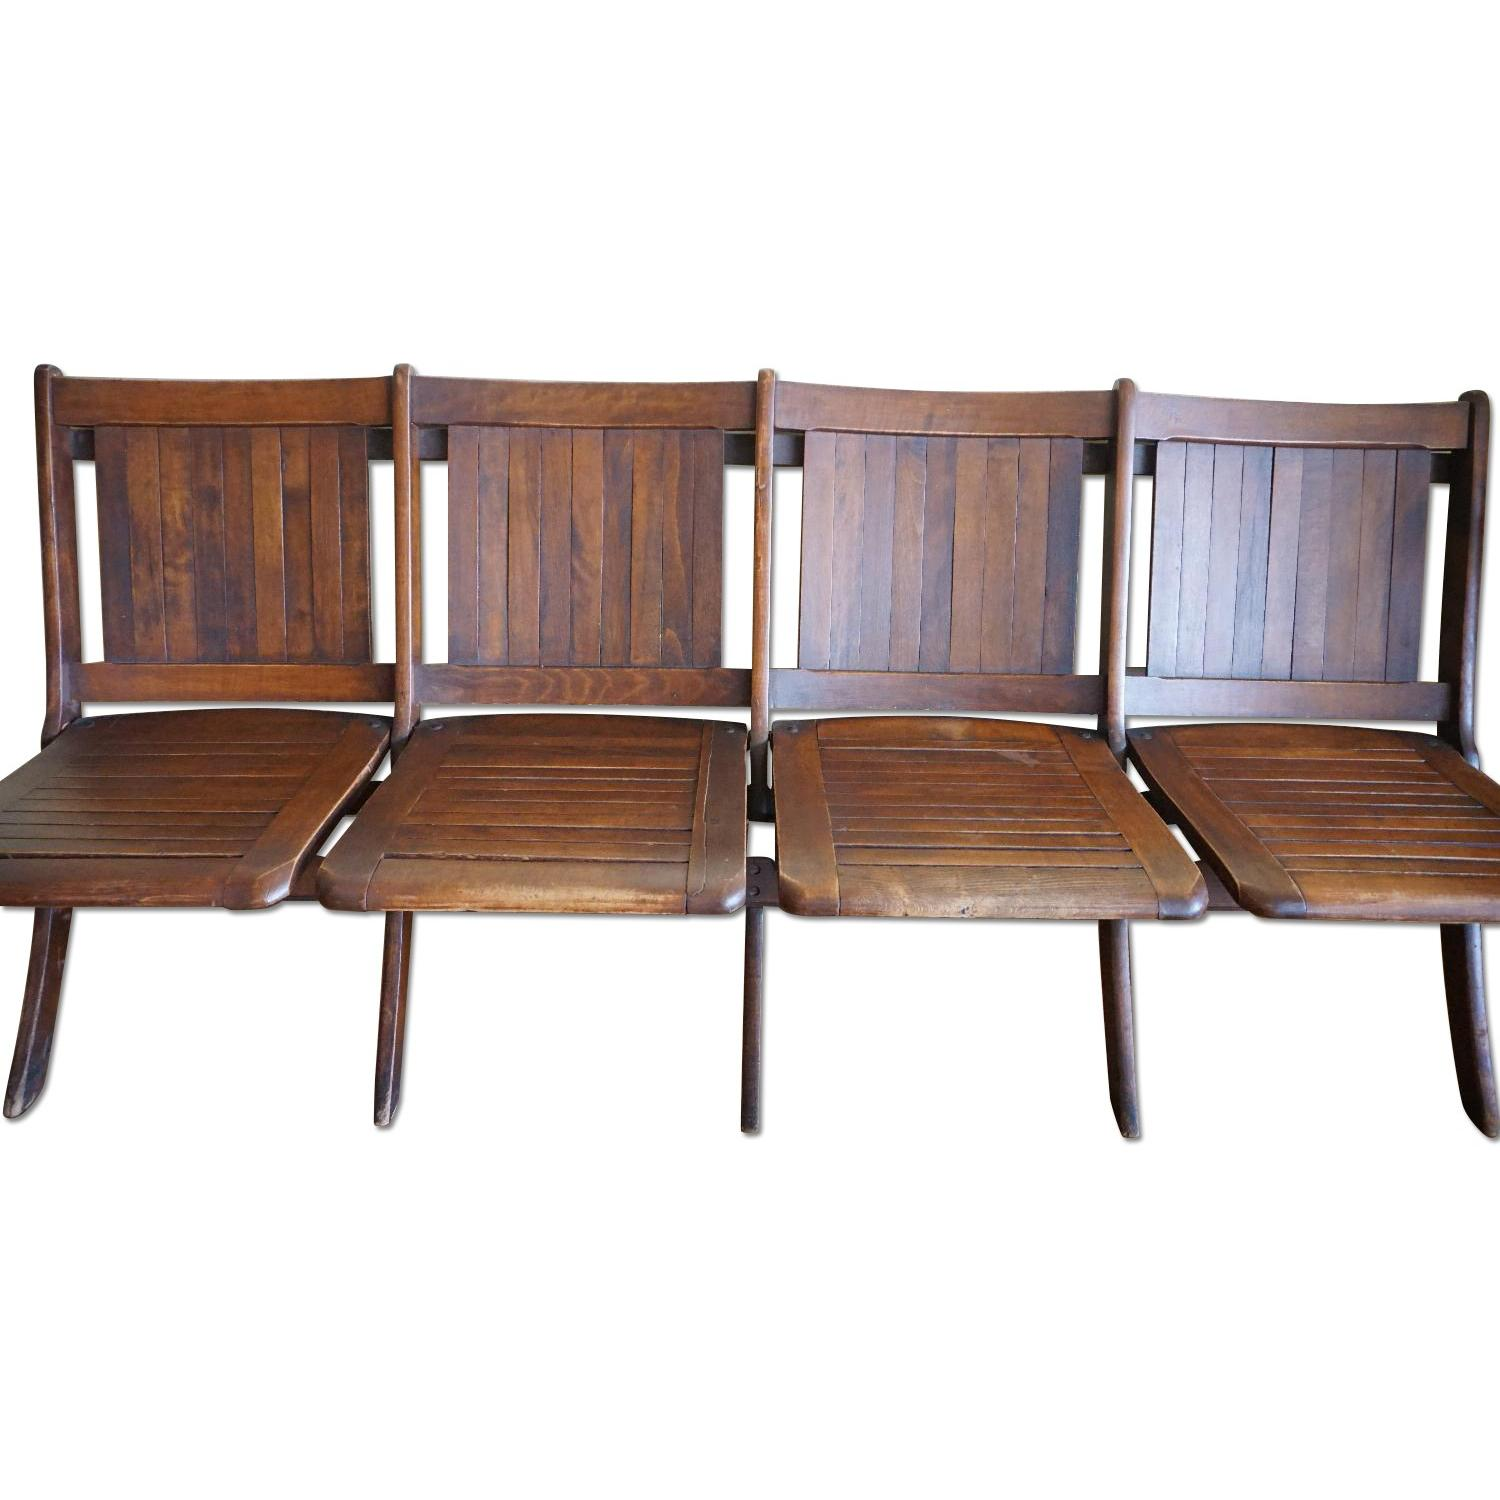 Vintage Harlem Movie Theater Wooden Bench Seats - image-0